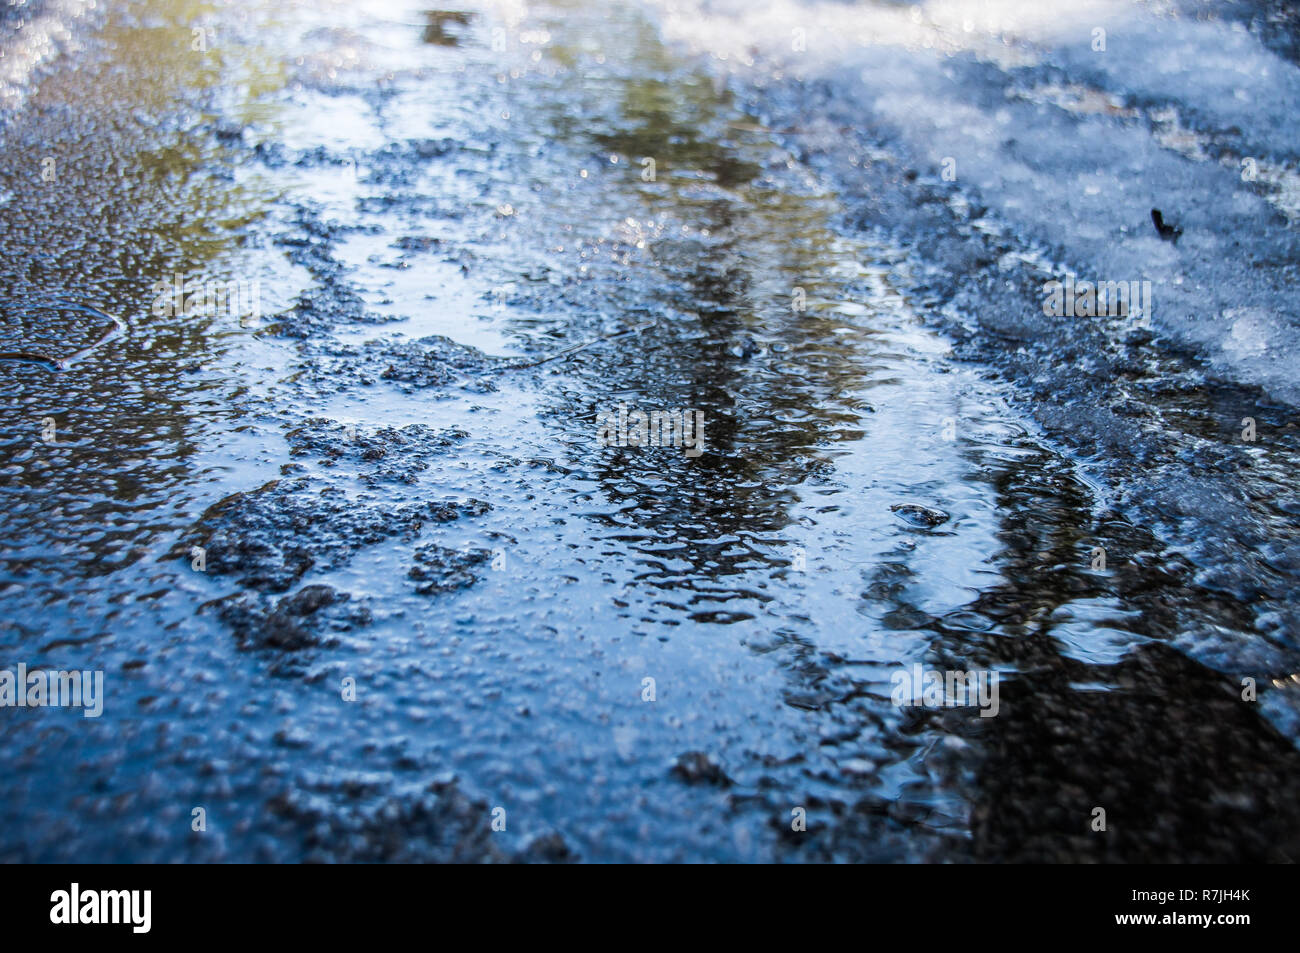 Melting ice on a road - Stock Image